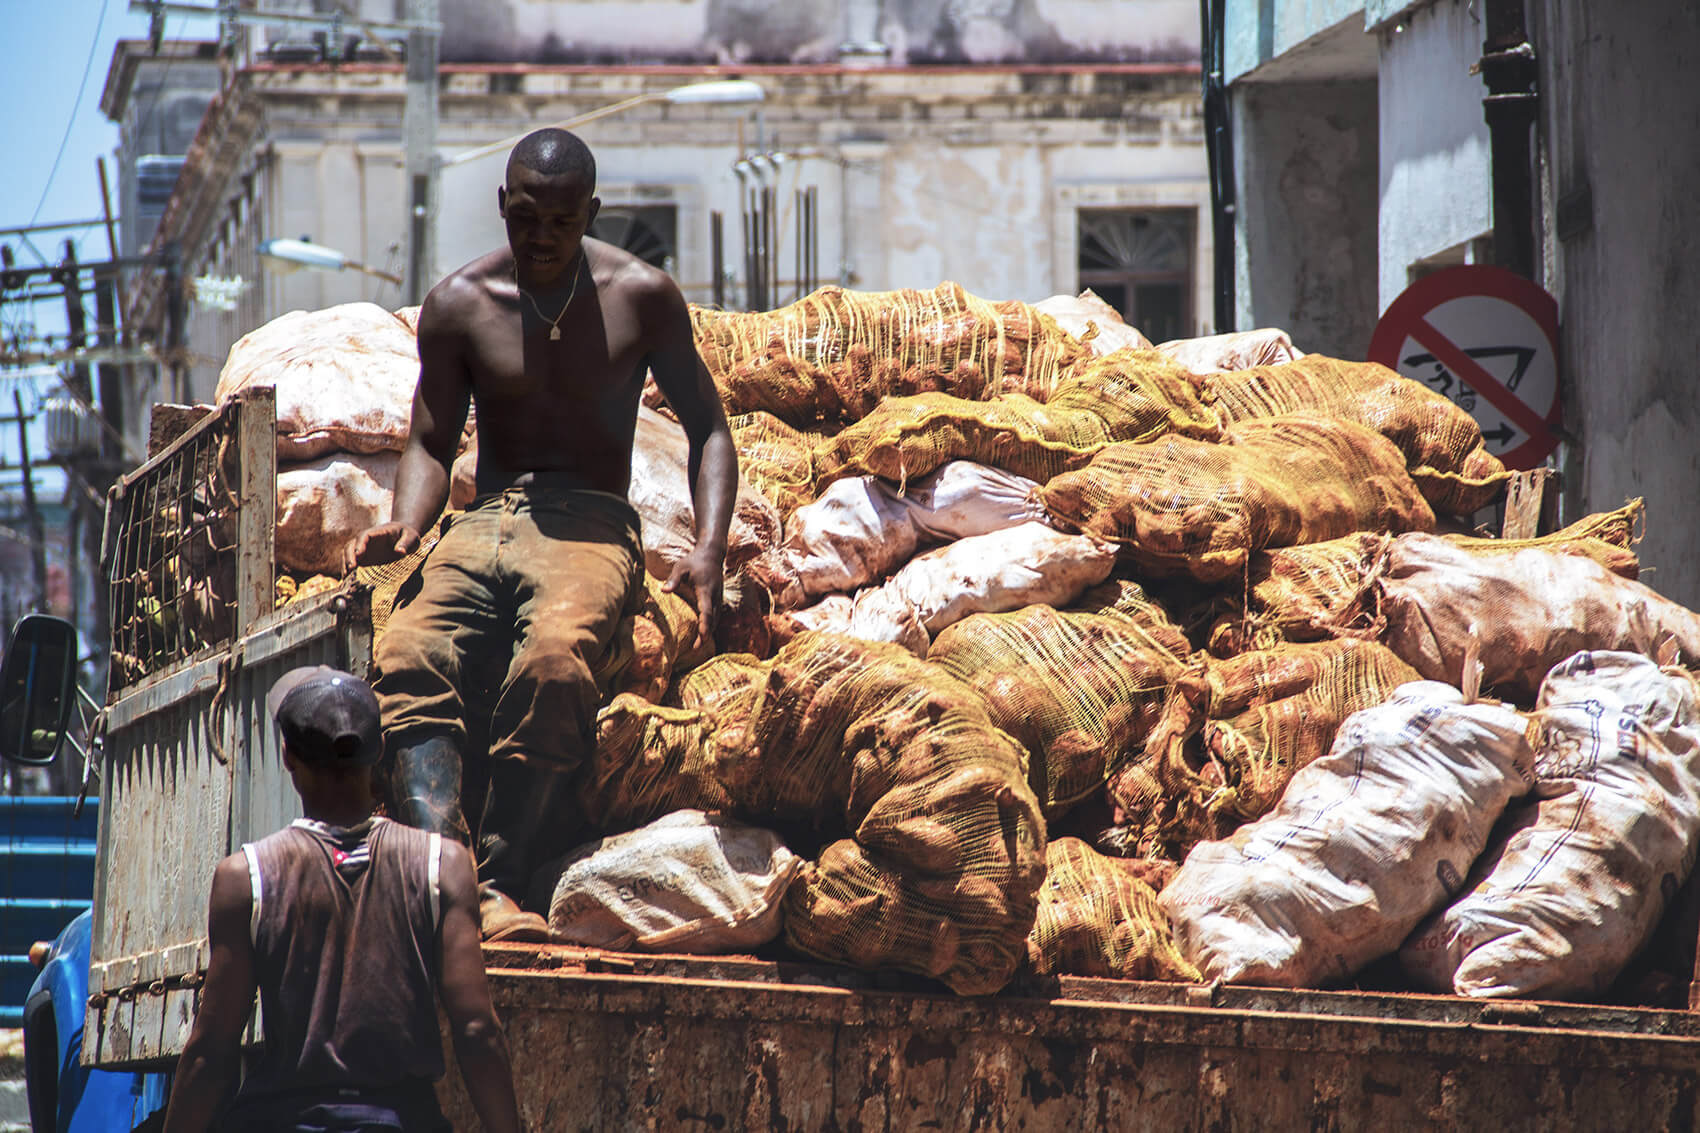 Workers unloading a truck full of potatoes.